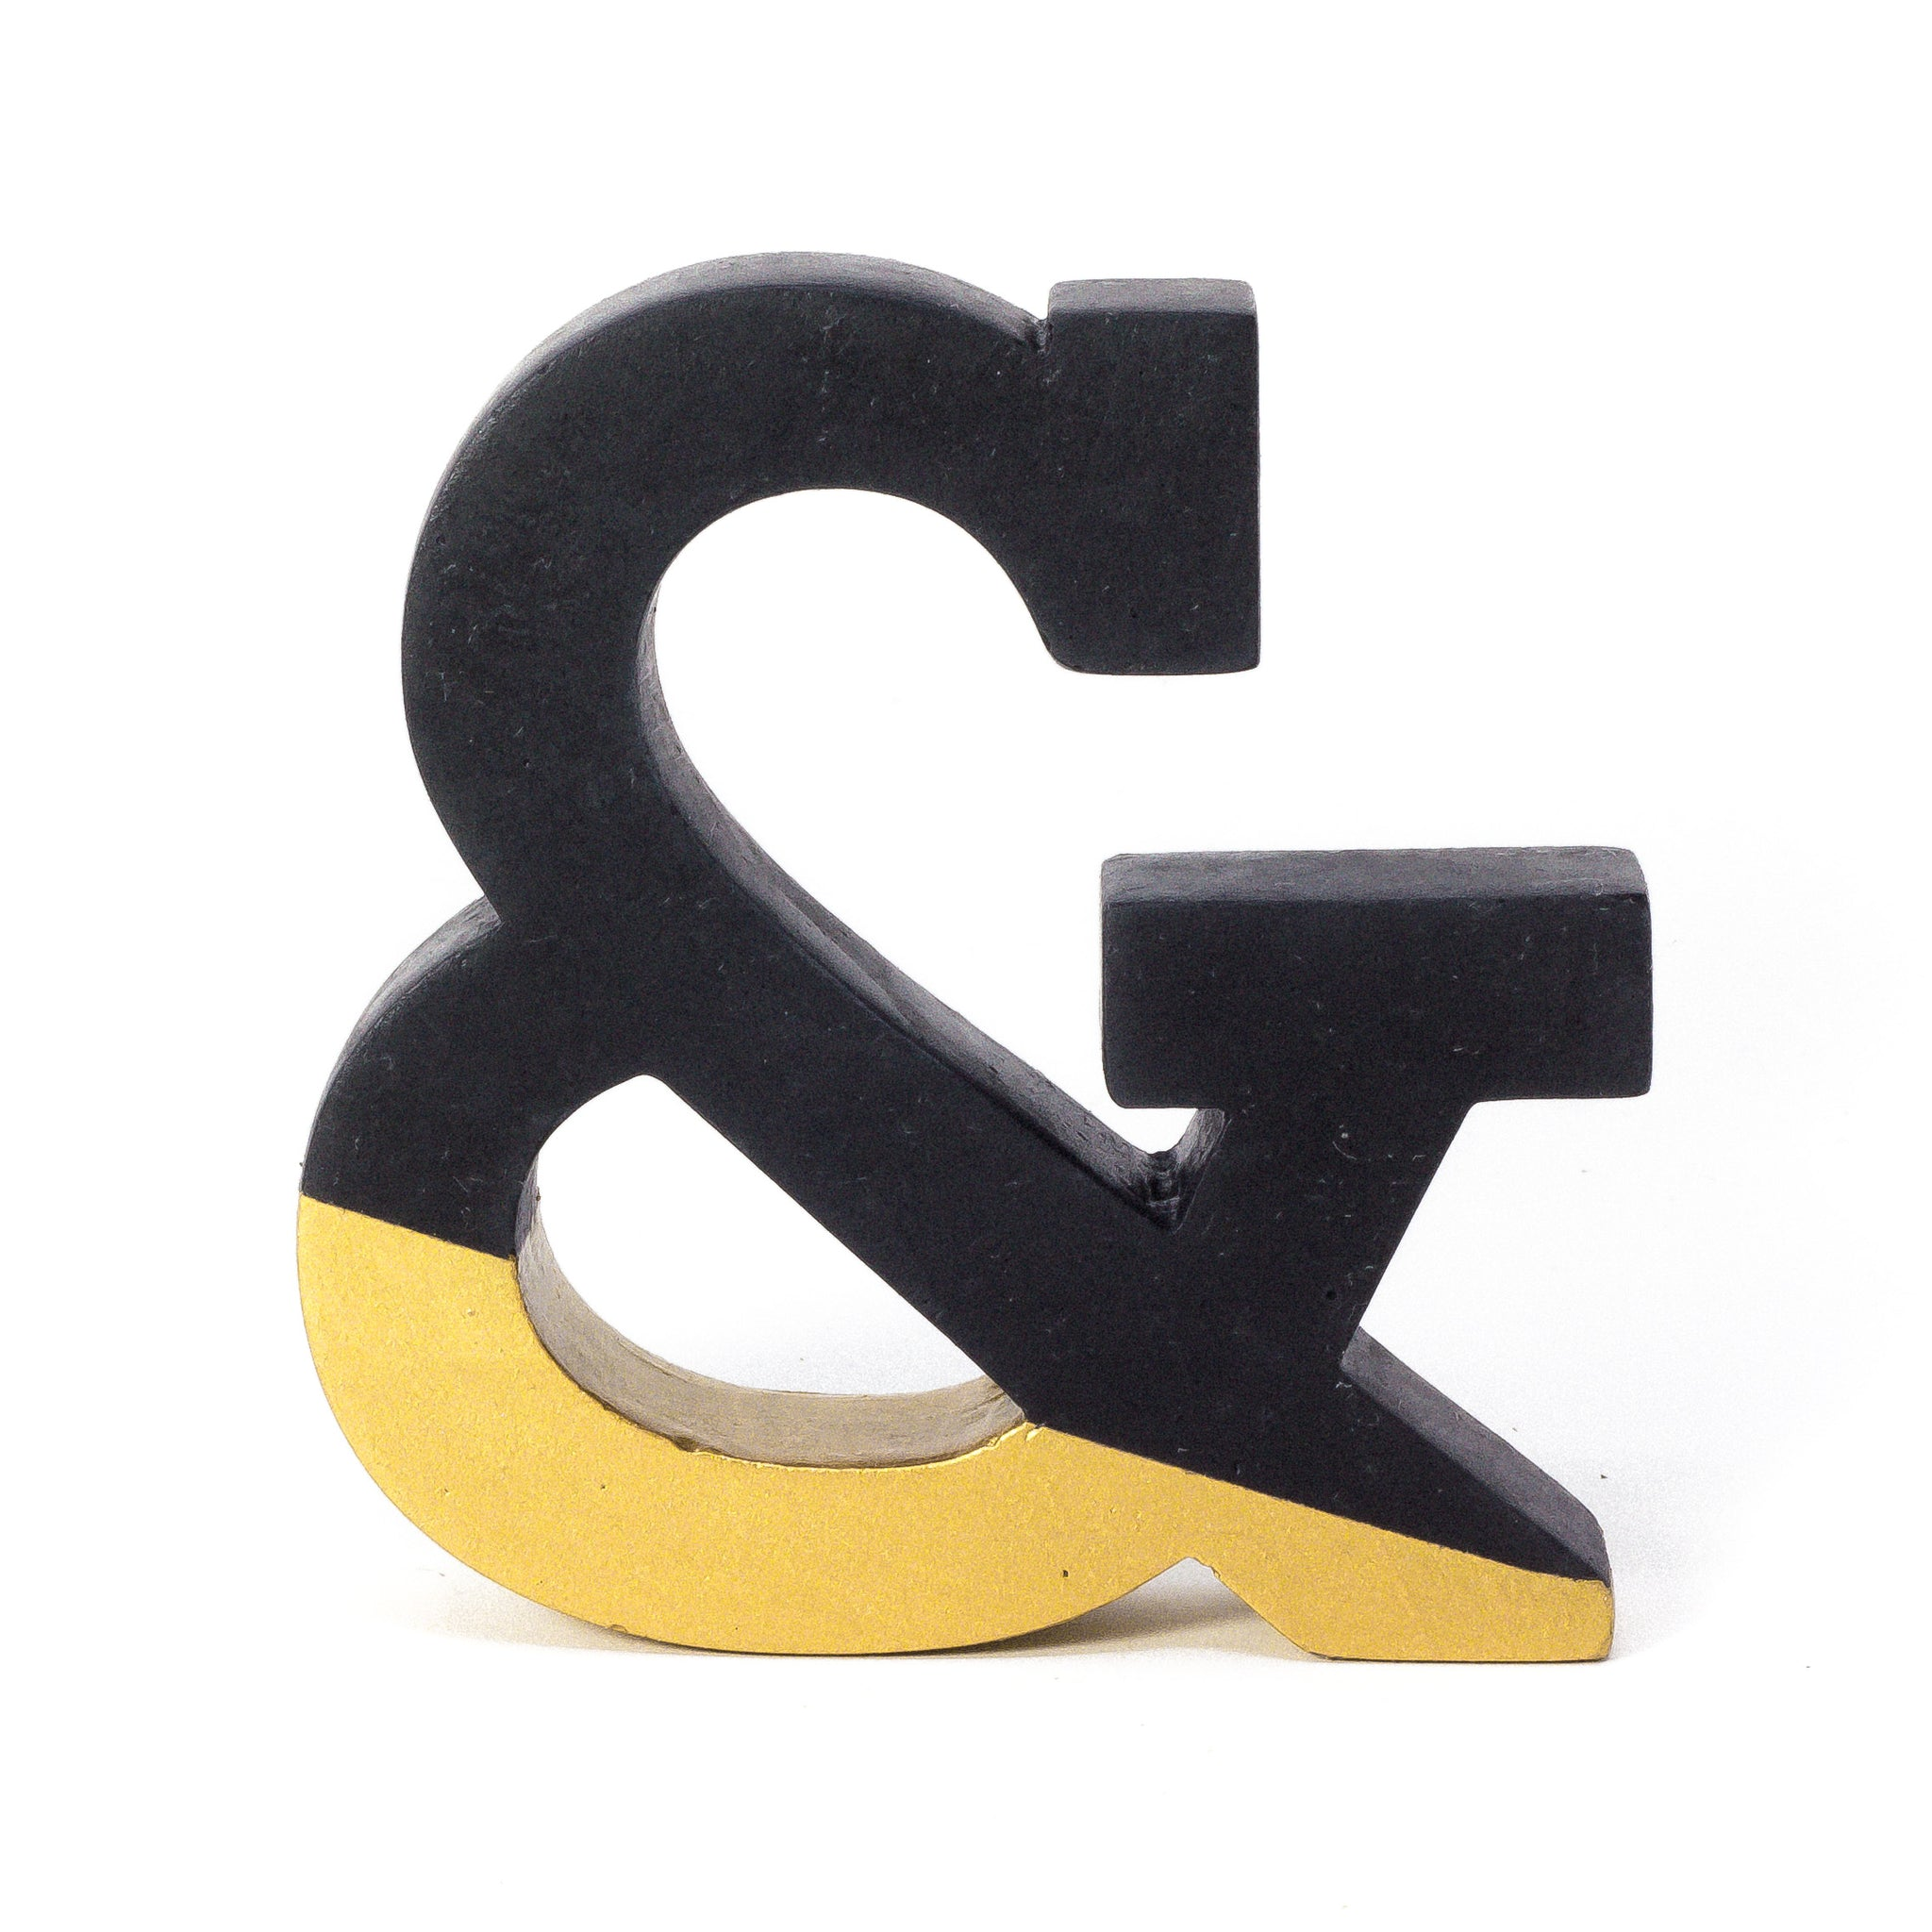 Concrete Ampersand: Black & Gold